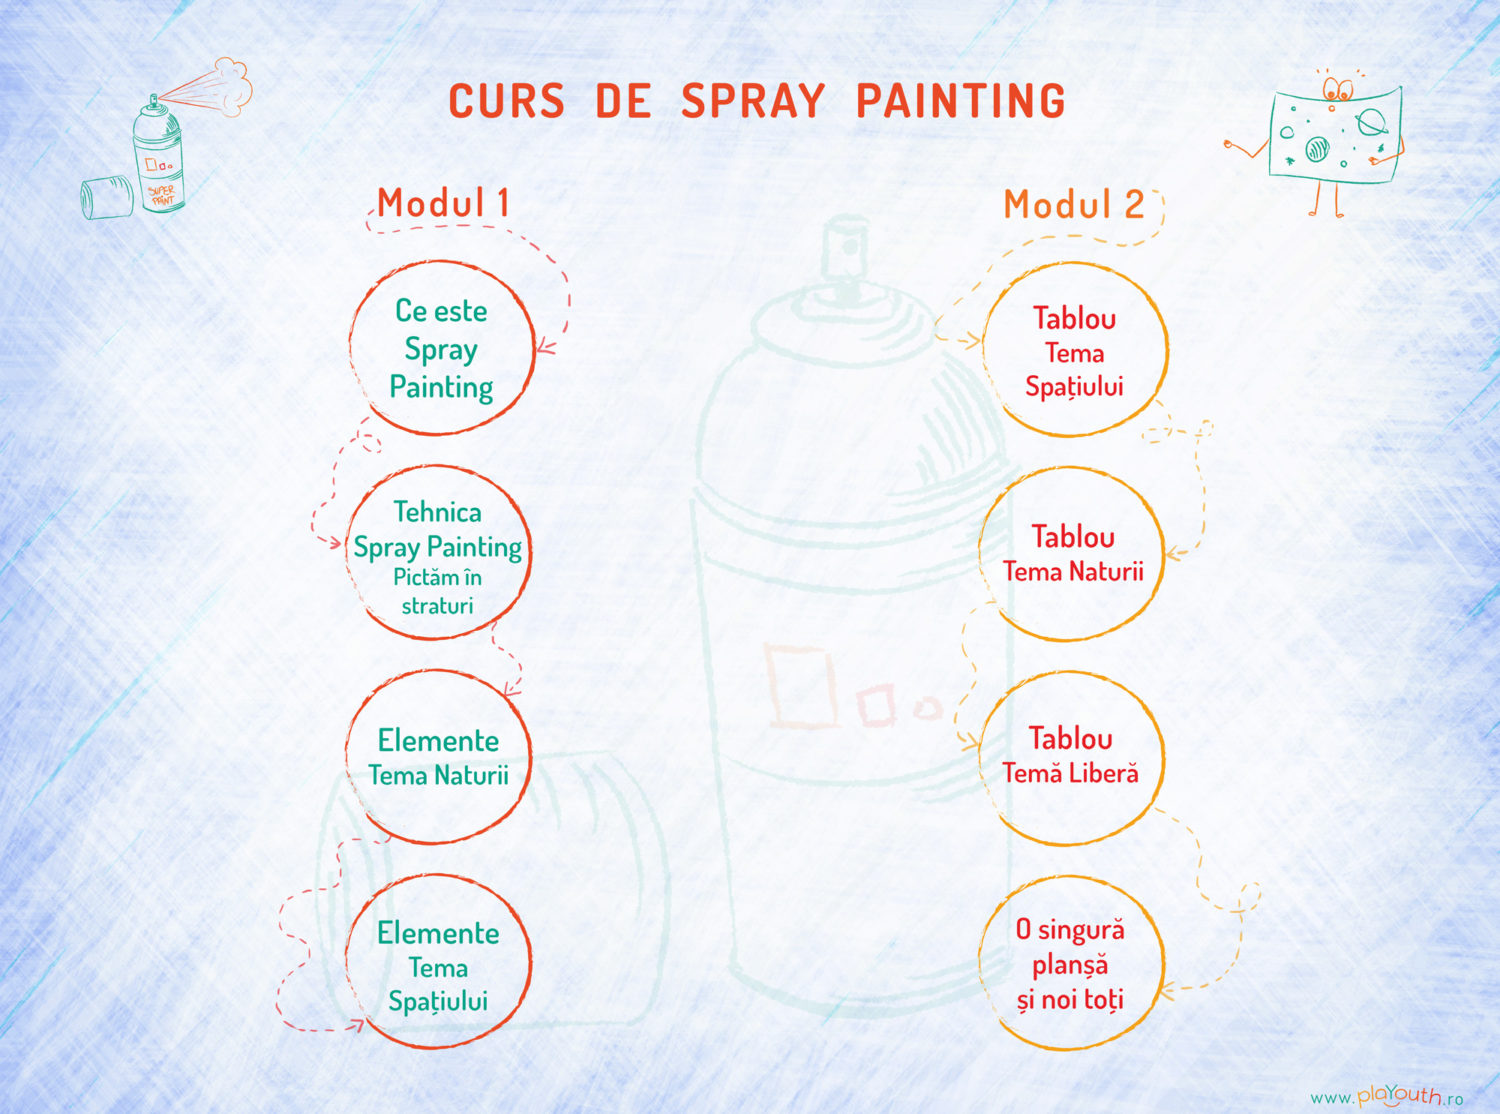 Curs de Spray Painting PlaYouth